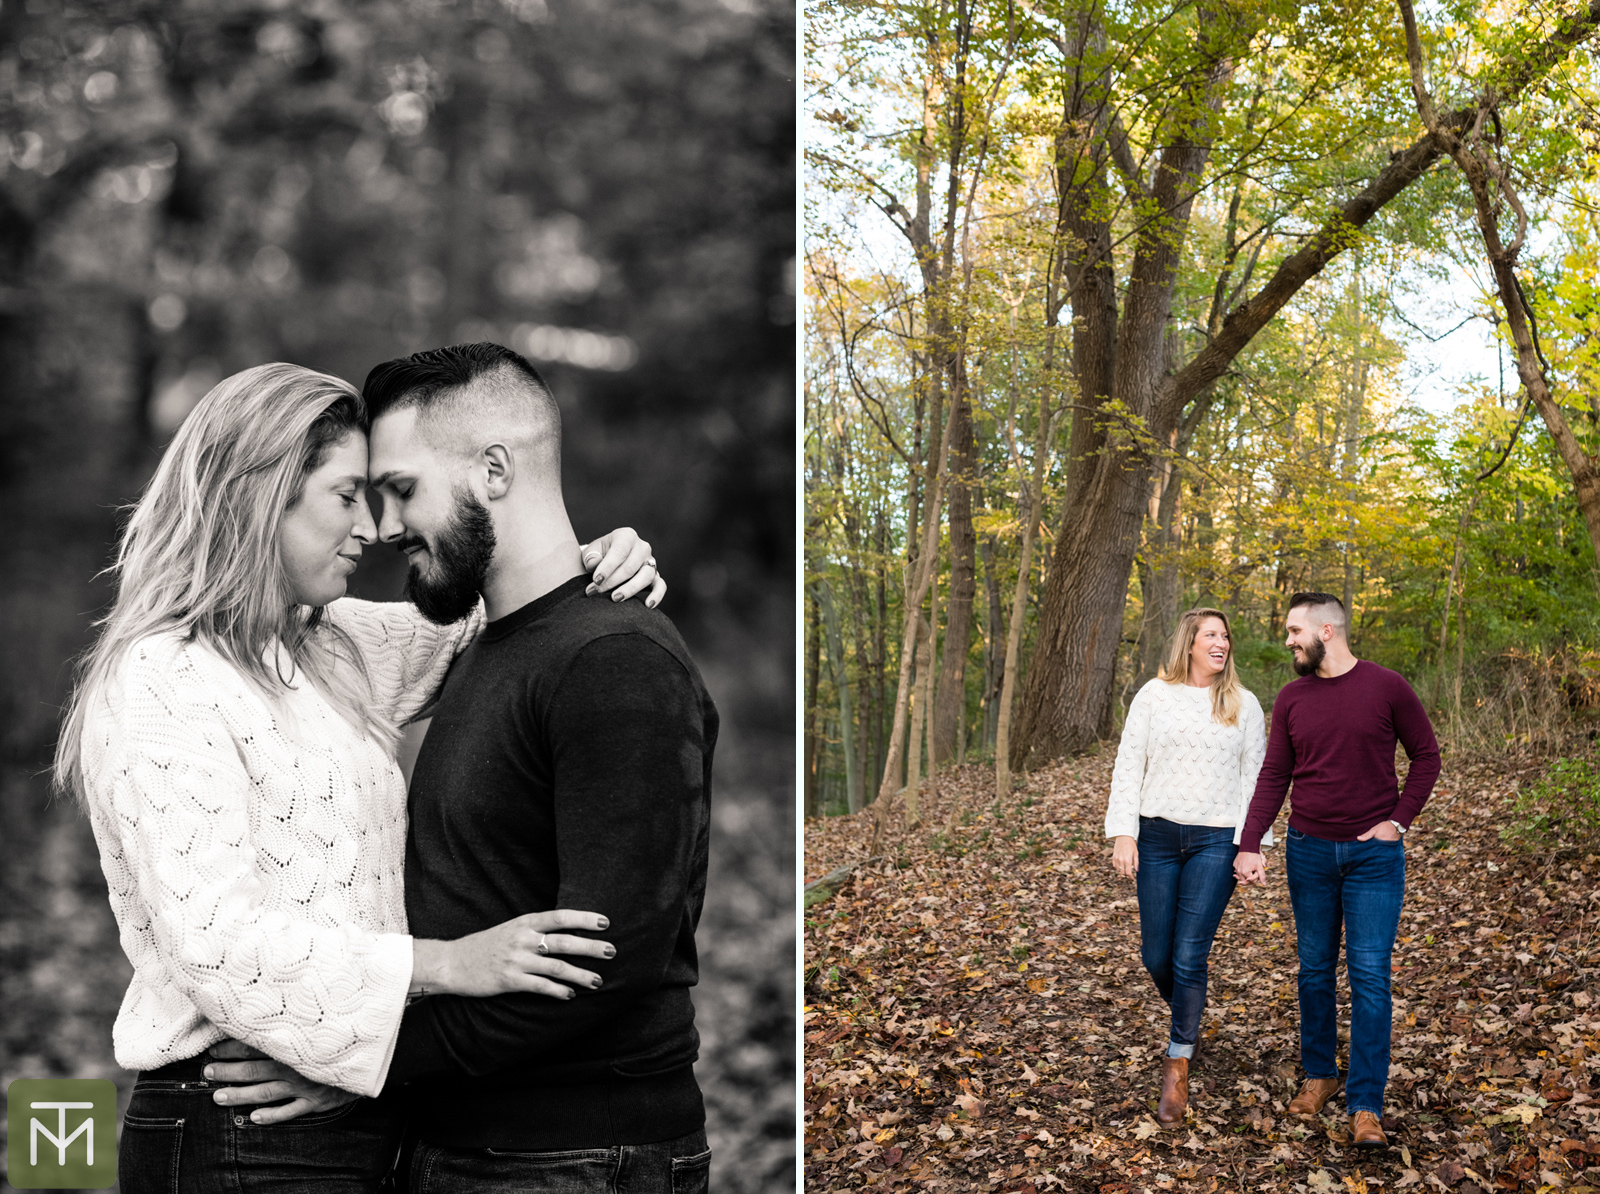 Michael & Anne {Esession by Tessa}